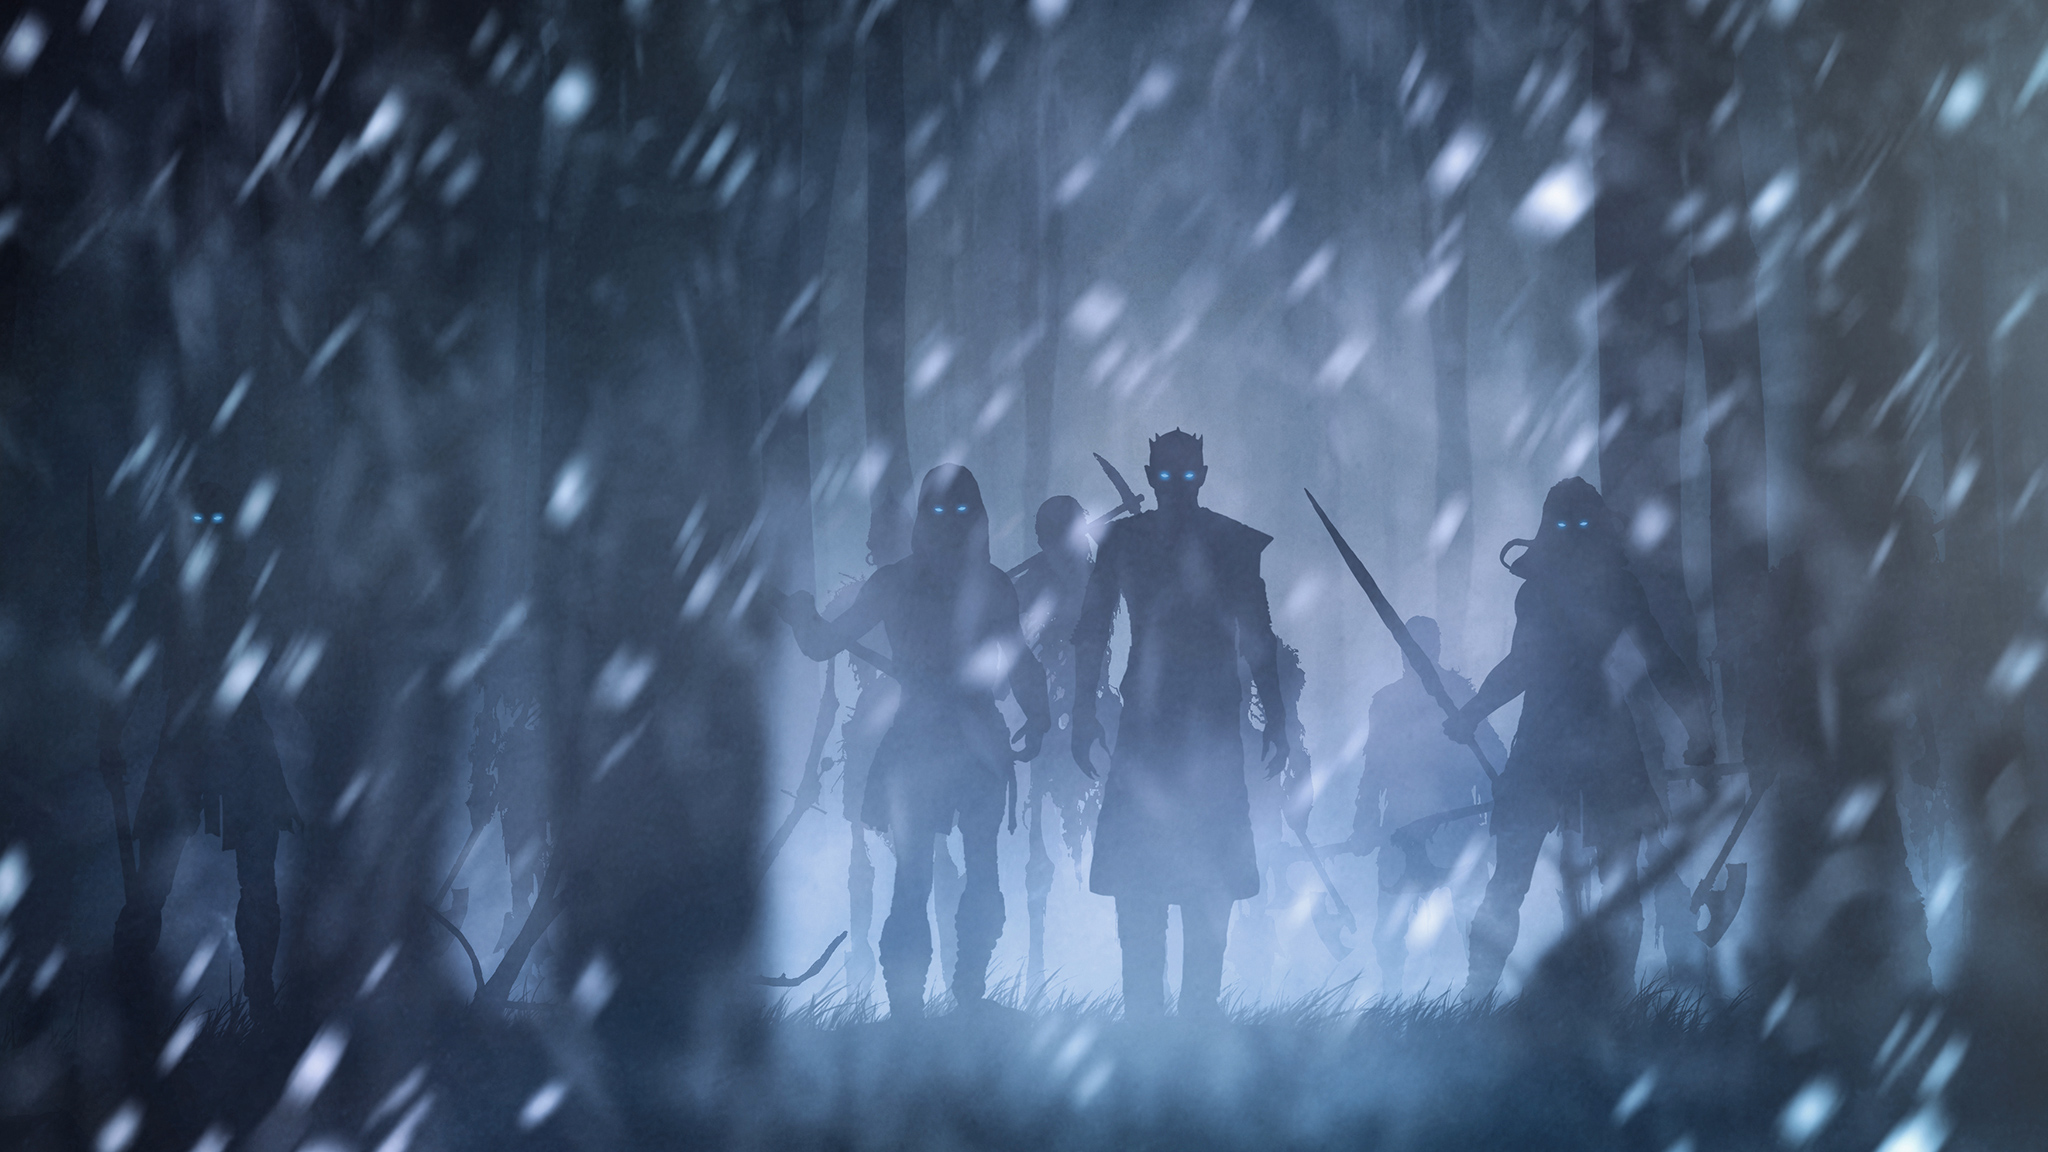 Night King With White Walkers Artwork Hd Tv Shows 4k Wallpapers